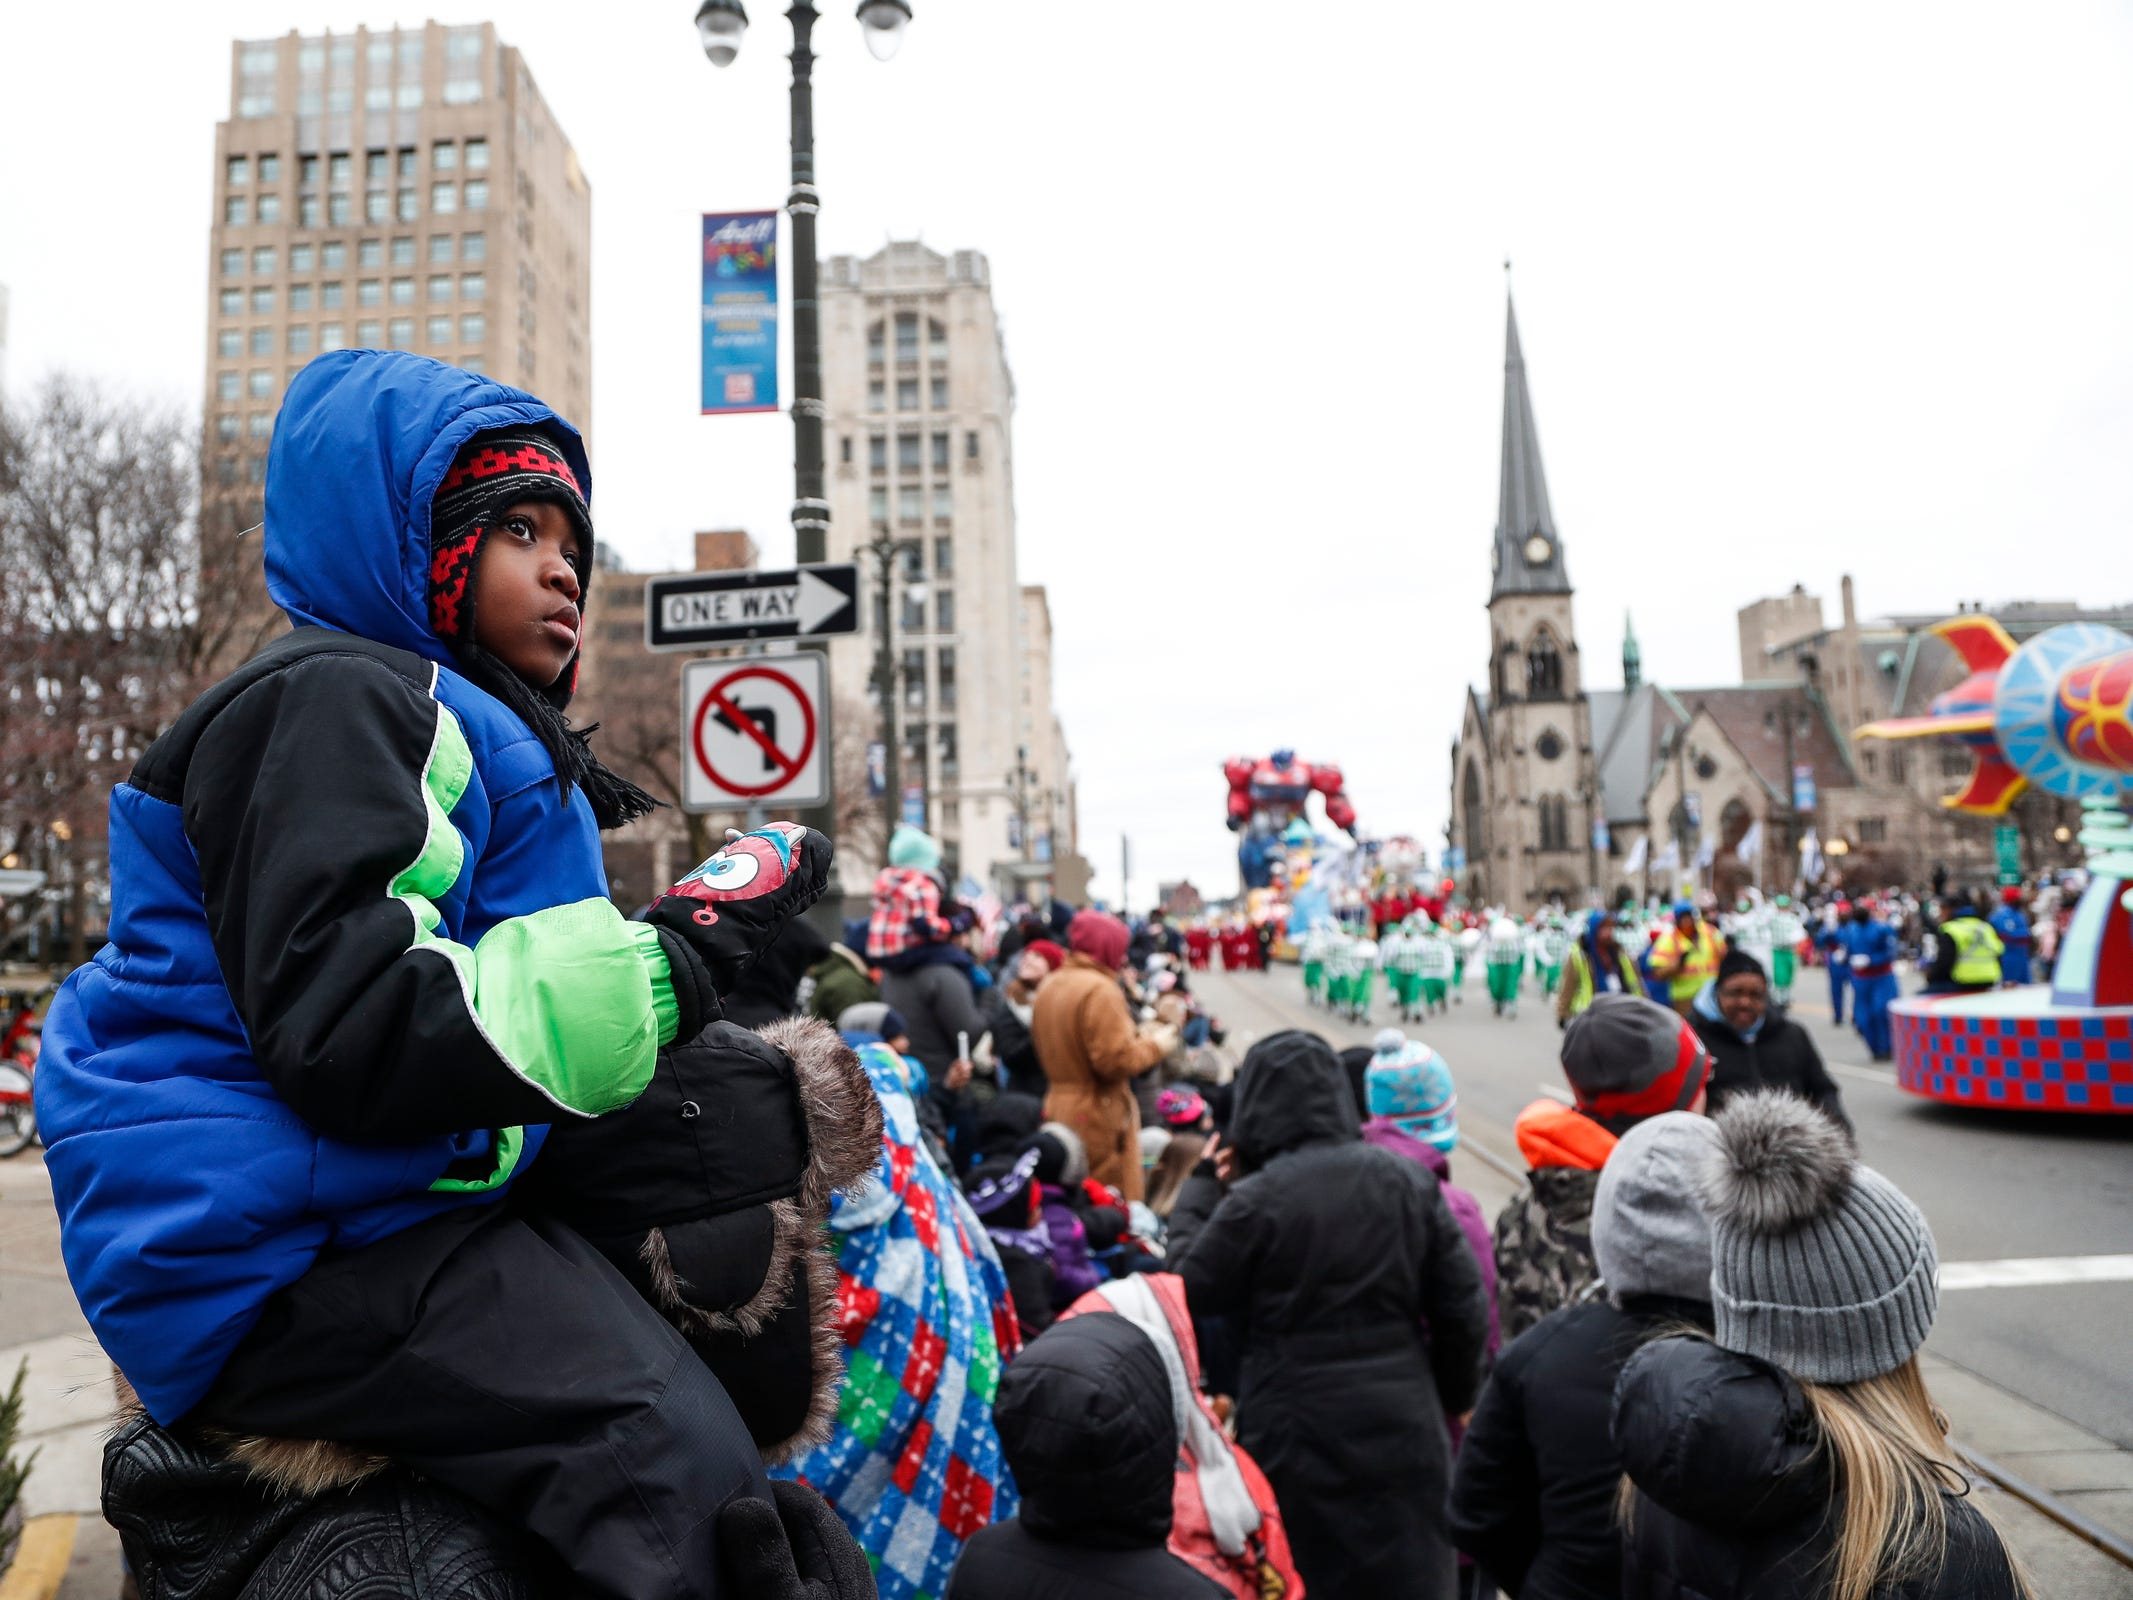 Lee Patterson III, 5, sits on his father's shoulder as they watch the 92nd America's Thanksgiving Day Parade on Woodward AvenueÊin Detroit, Thursday, Nov. 22, 2018.